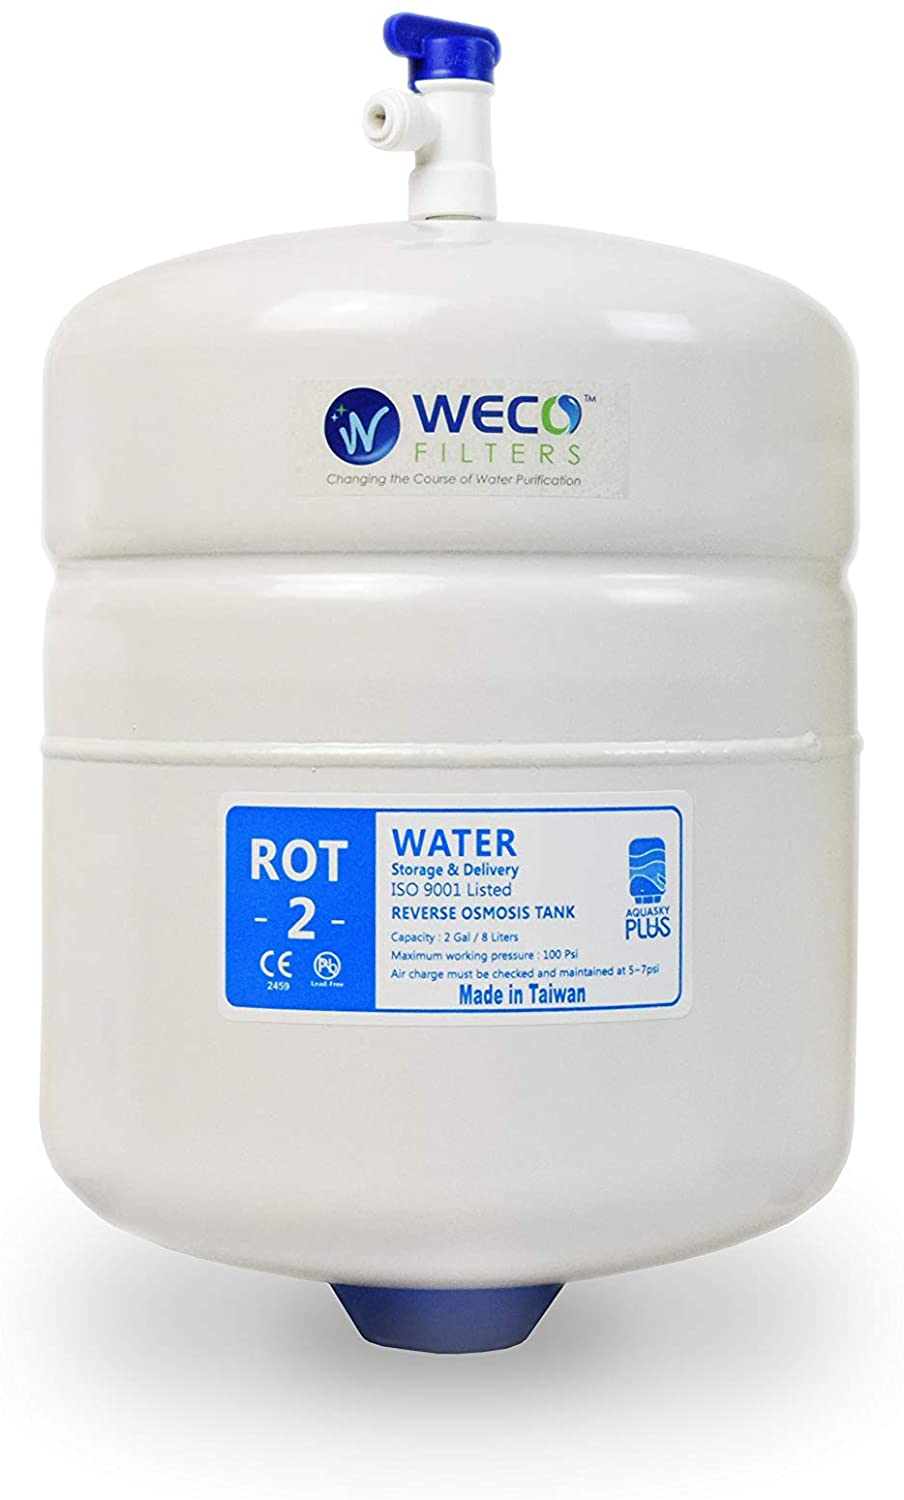 Pressurized RO Water Storage Tank - Total Capacity 2.0 Gal & appx. 1.2 Gal Usable Capacity (ROT-2-W)